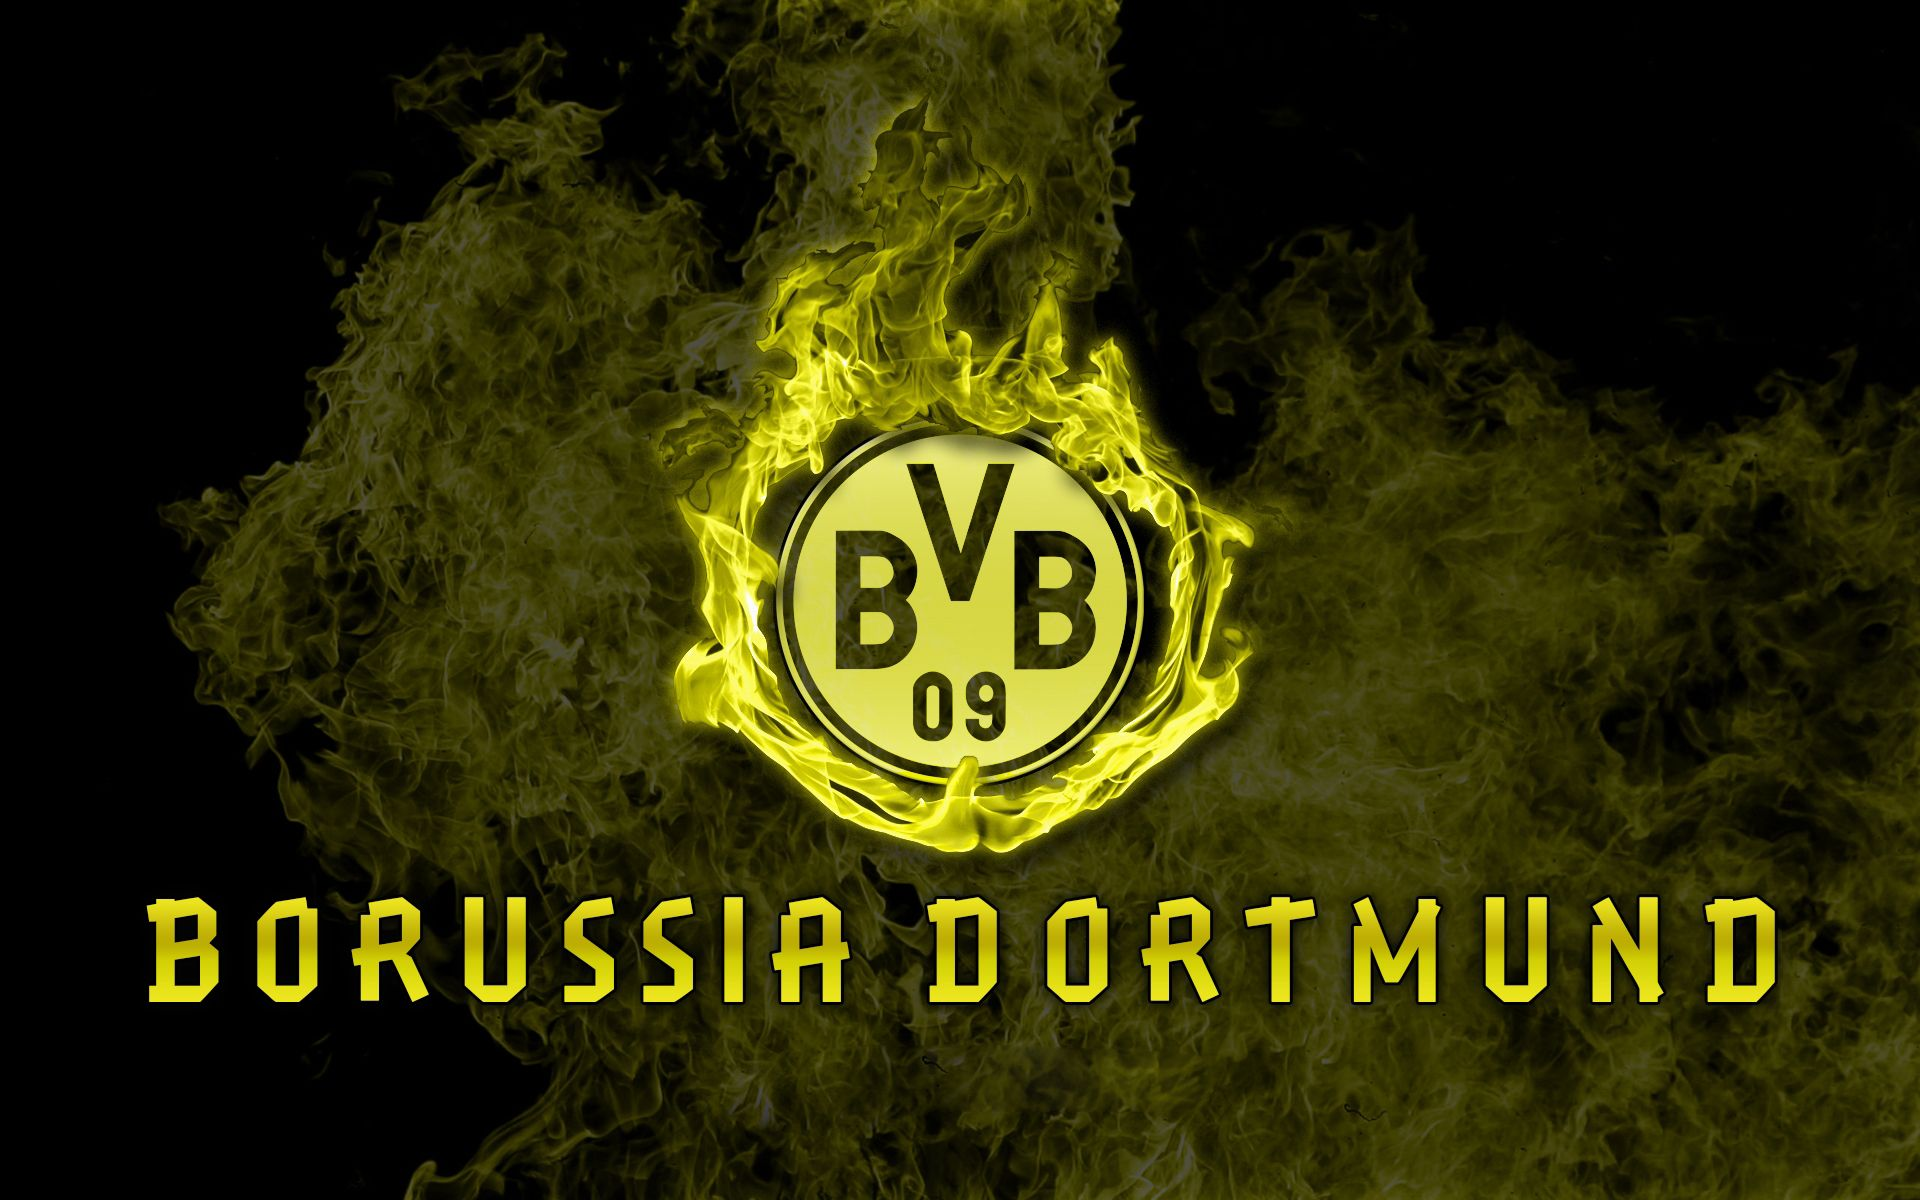 Borussia Dortmund Wallpapers HD Desktop and Mobile Backgrounds 1920x1200